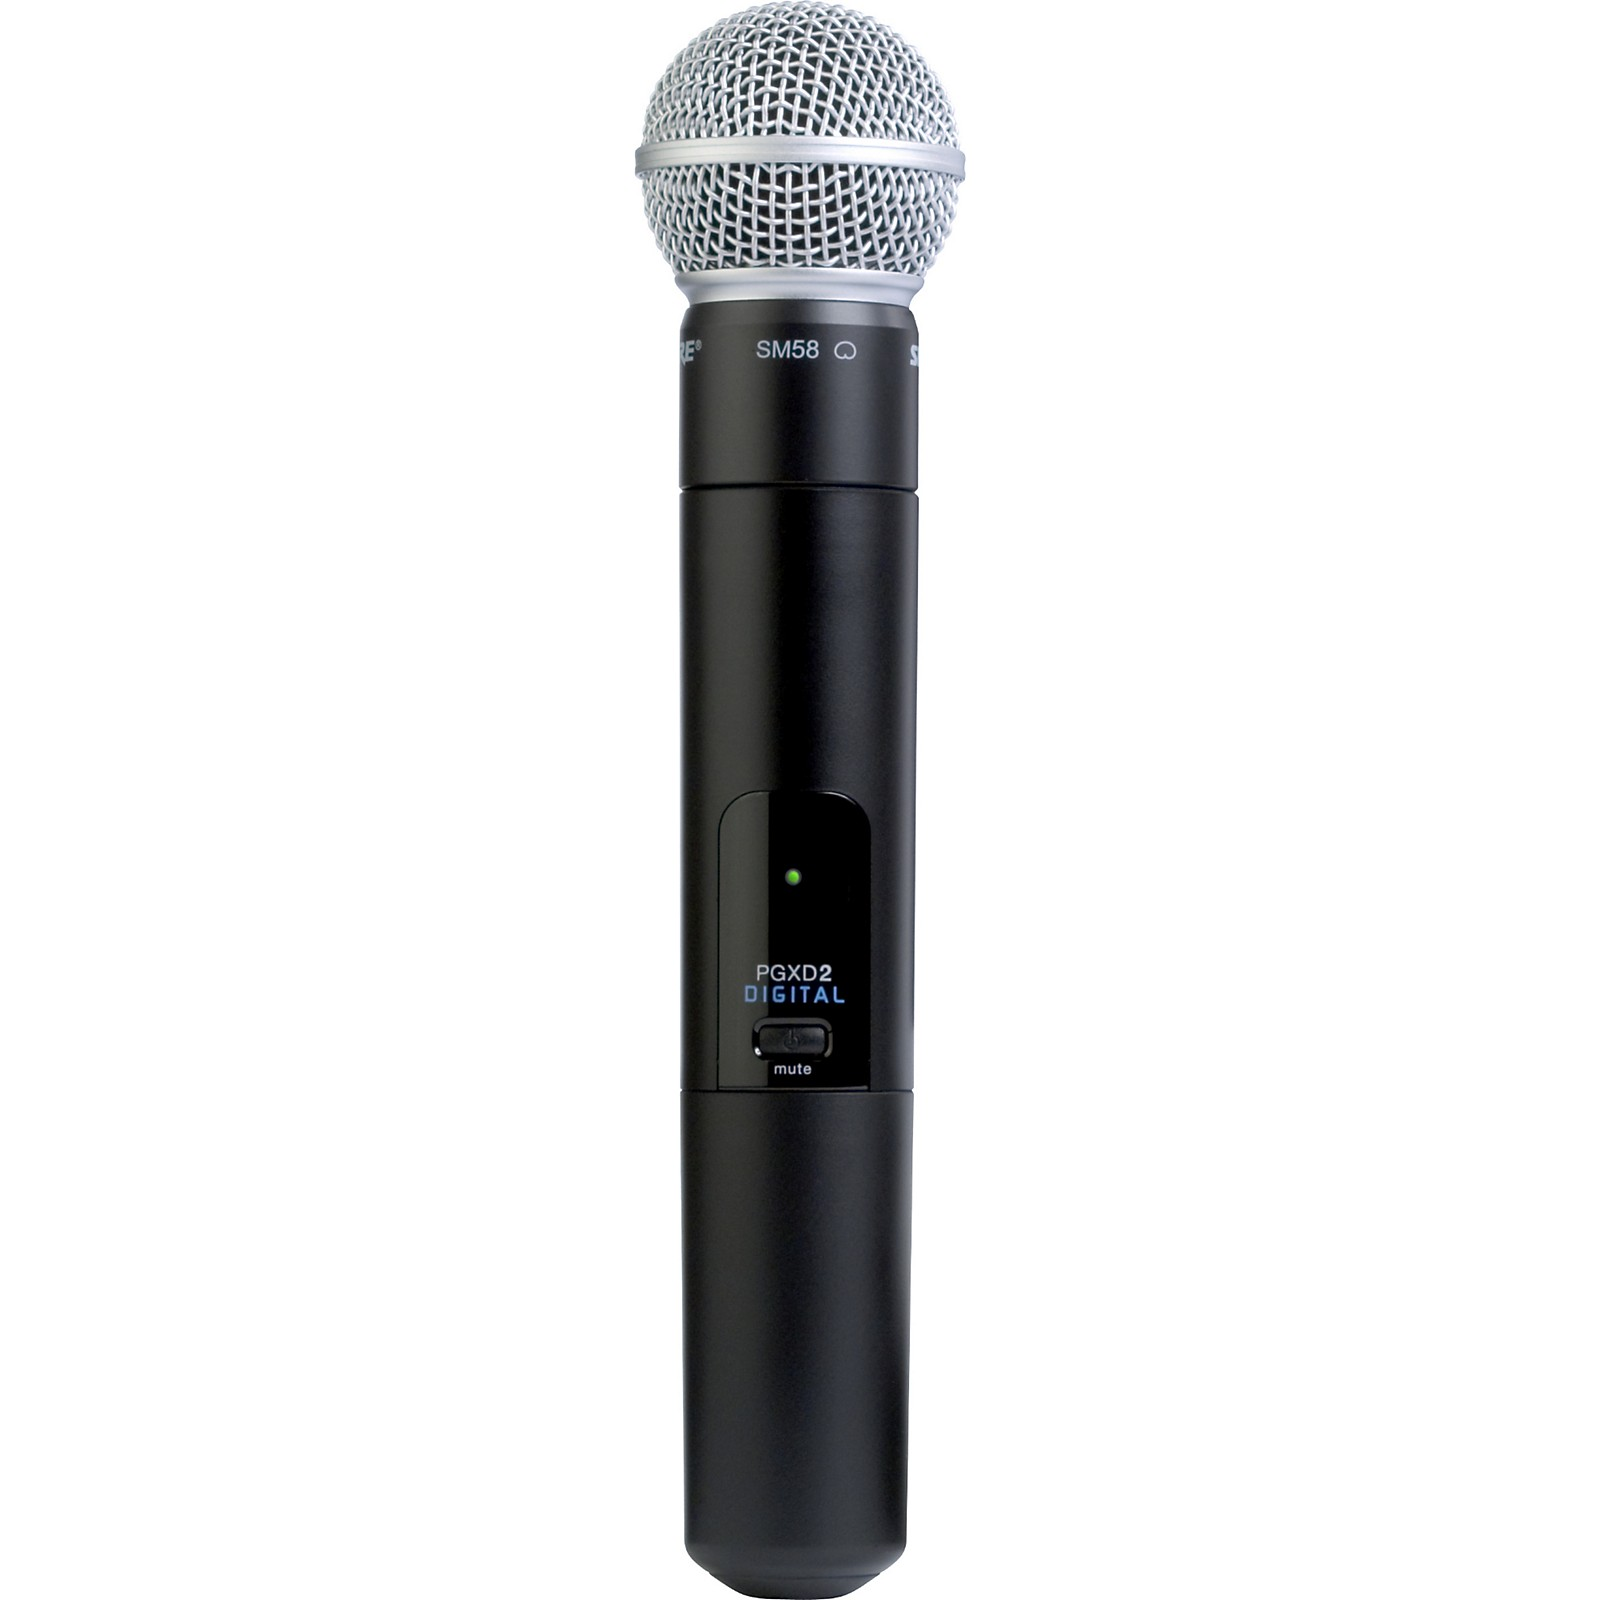 Open Box Shure PGXD2/SM58 Handheld Transmitter with SM58 Mic